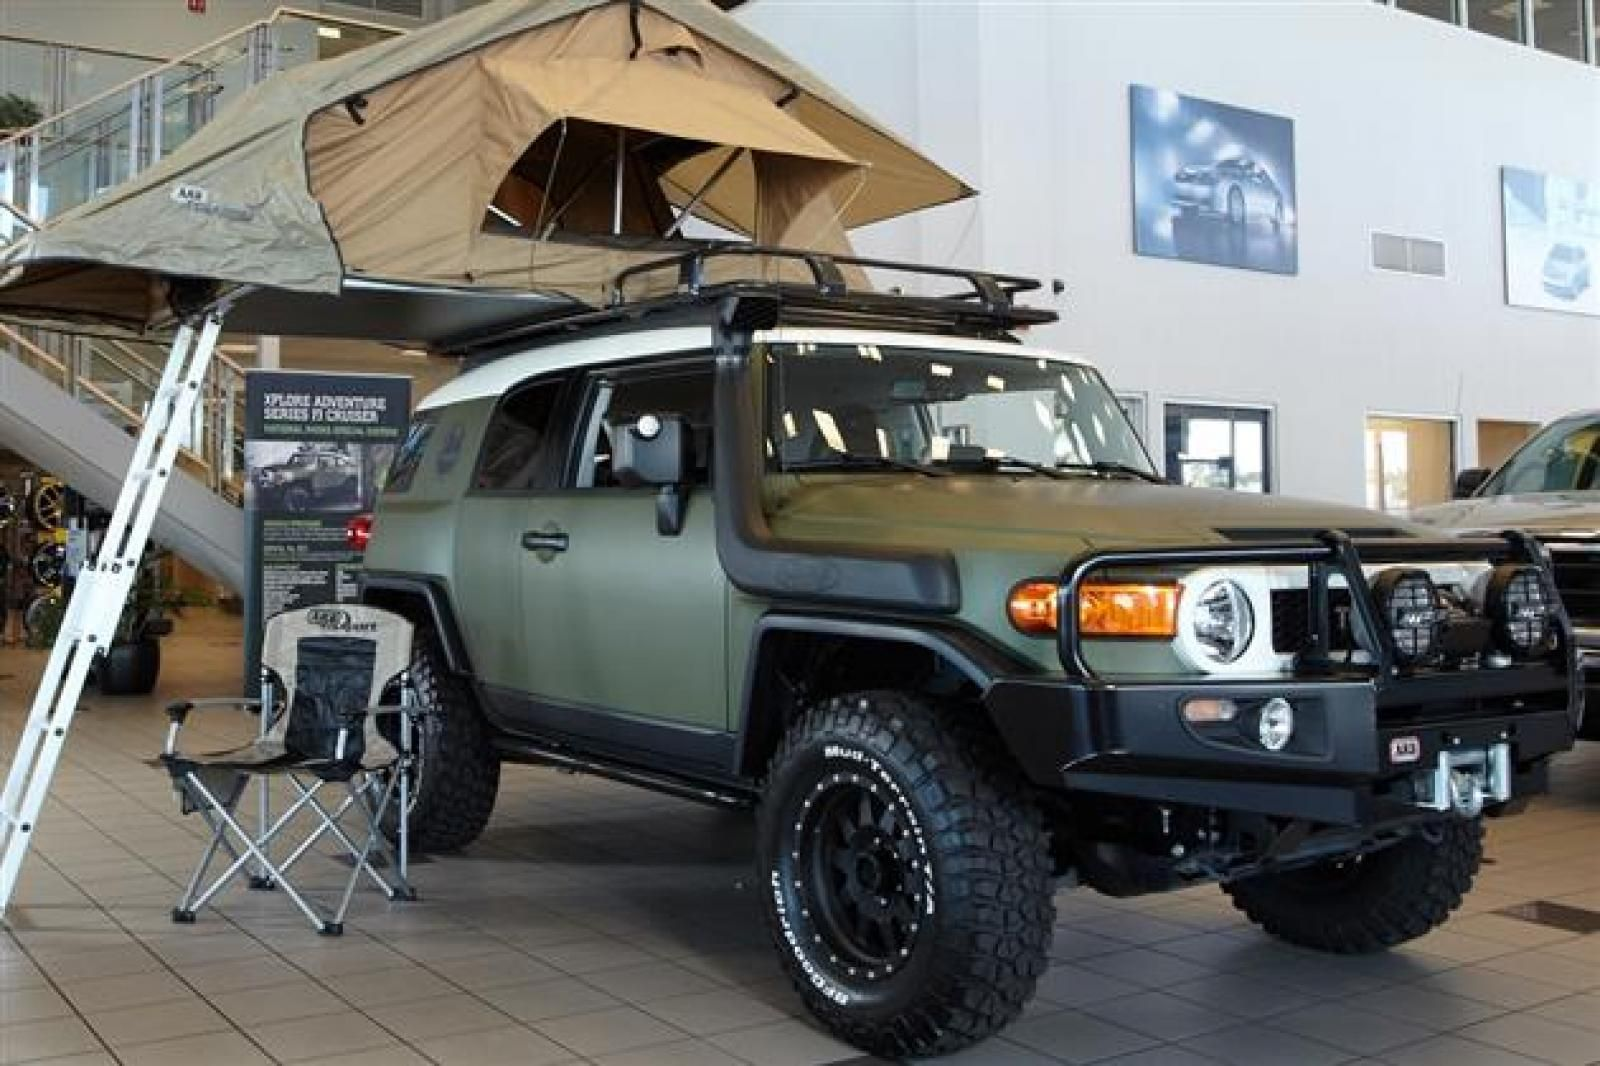 Pin By Schalk Botha On Adventure Toyota Fj Cruiser Fj